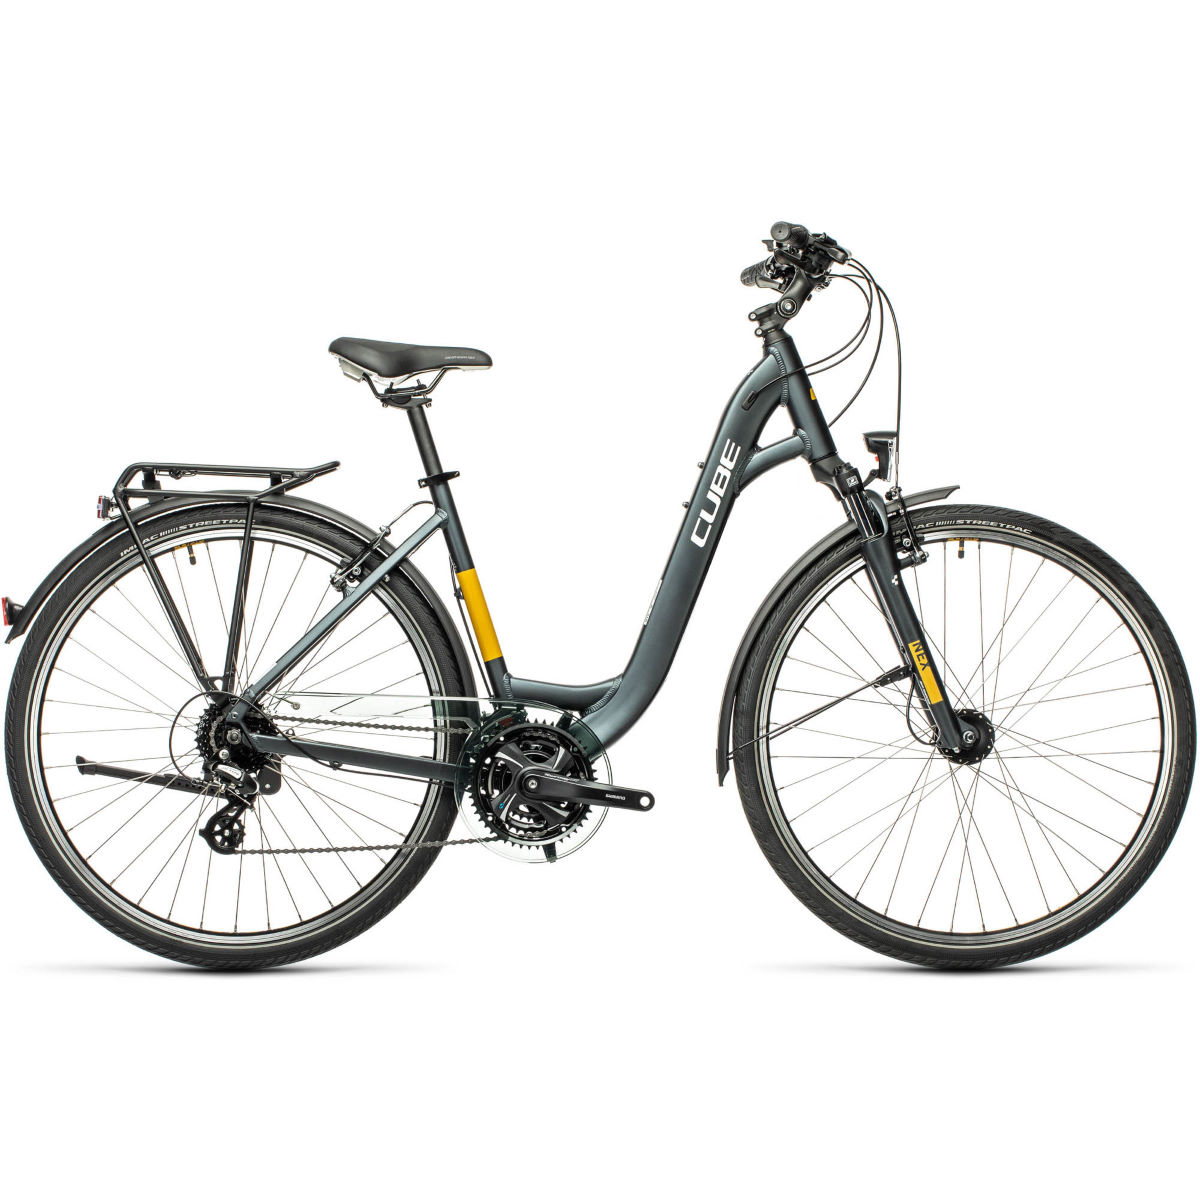 Cube Cube Touring Easy-Entry Bike (2021)   Hybrid Bikes